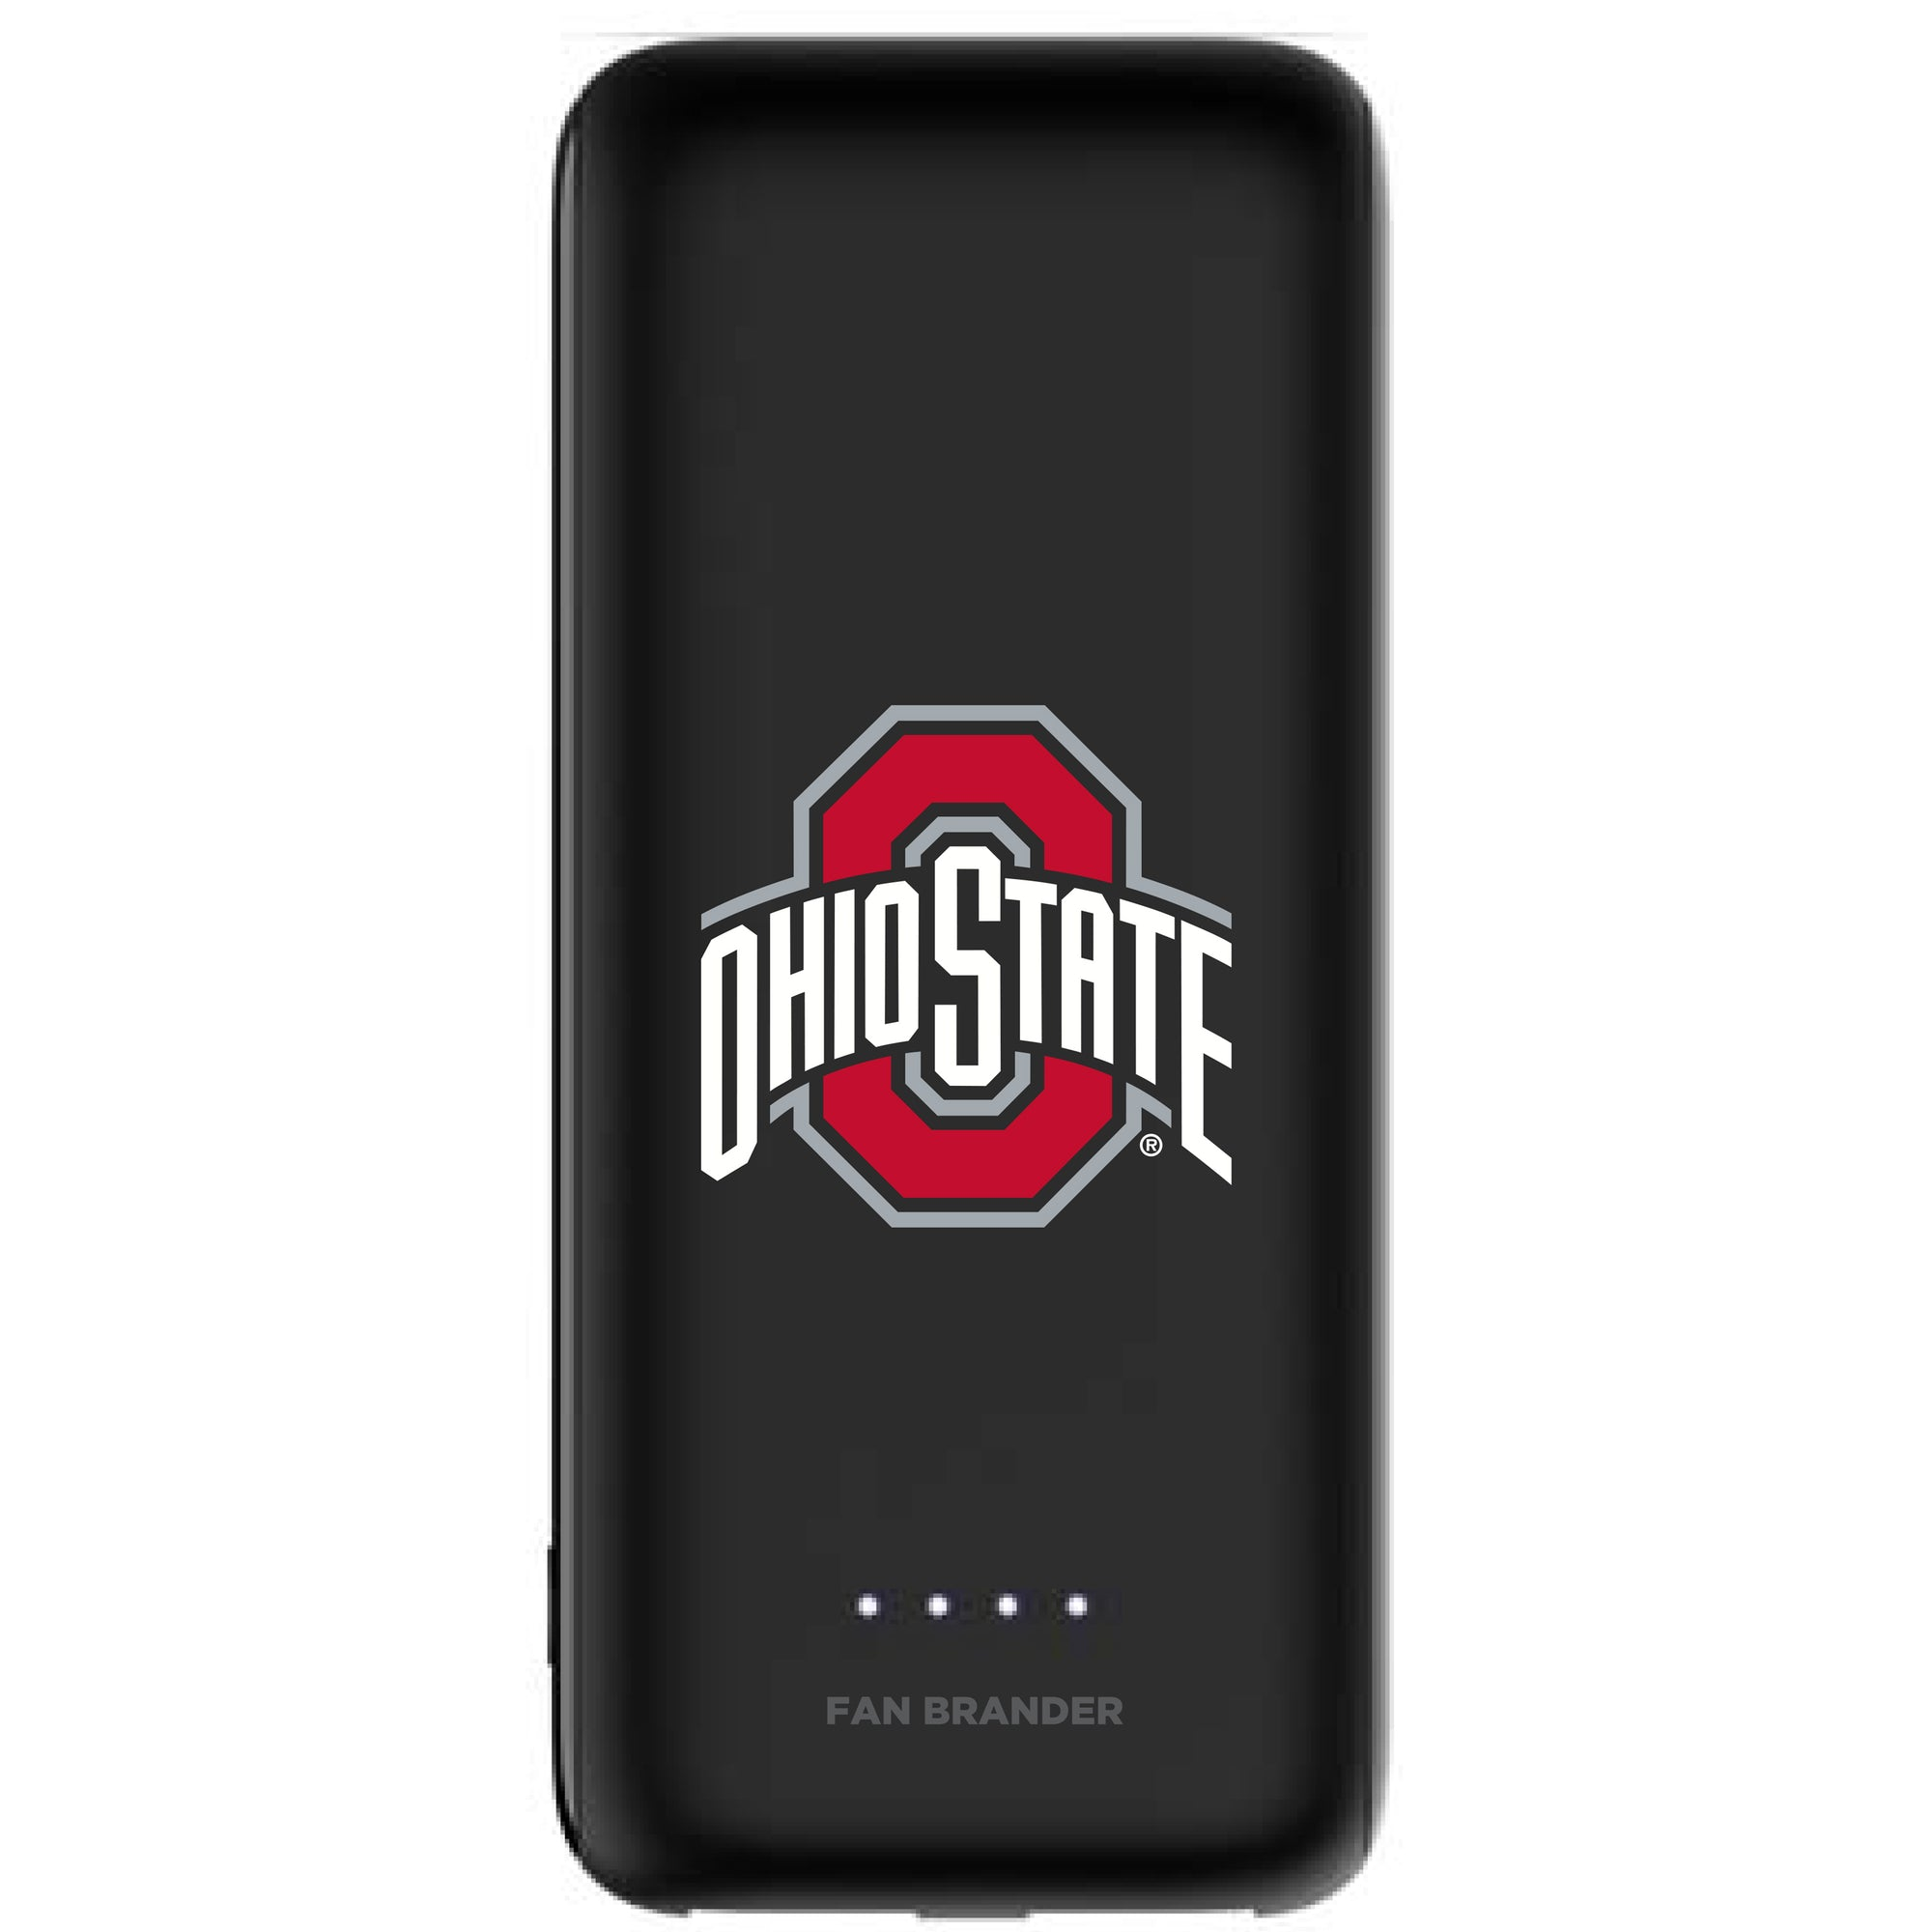 Ohio State Buckeyes Power Boost Mini 5,200 mAH